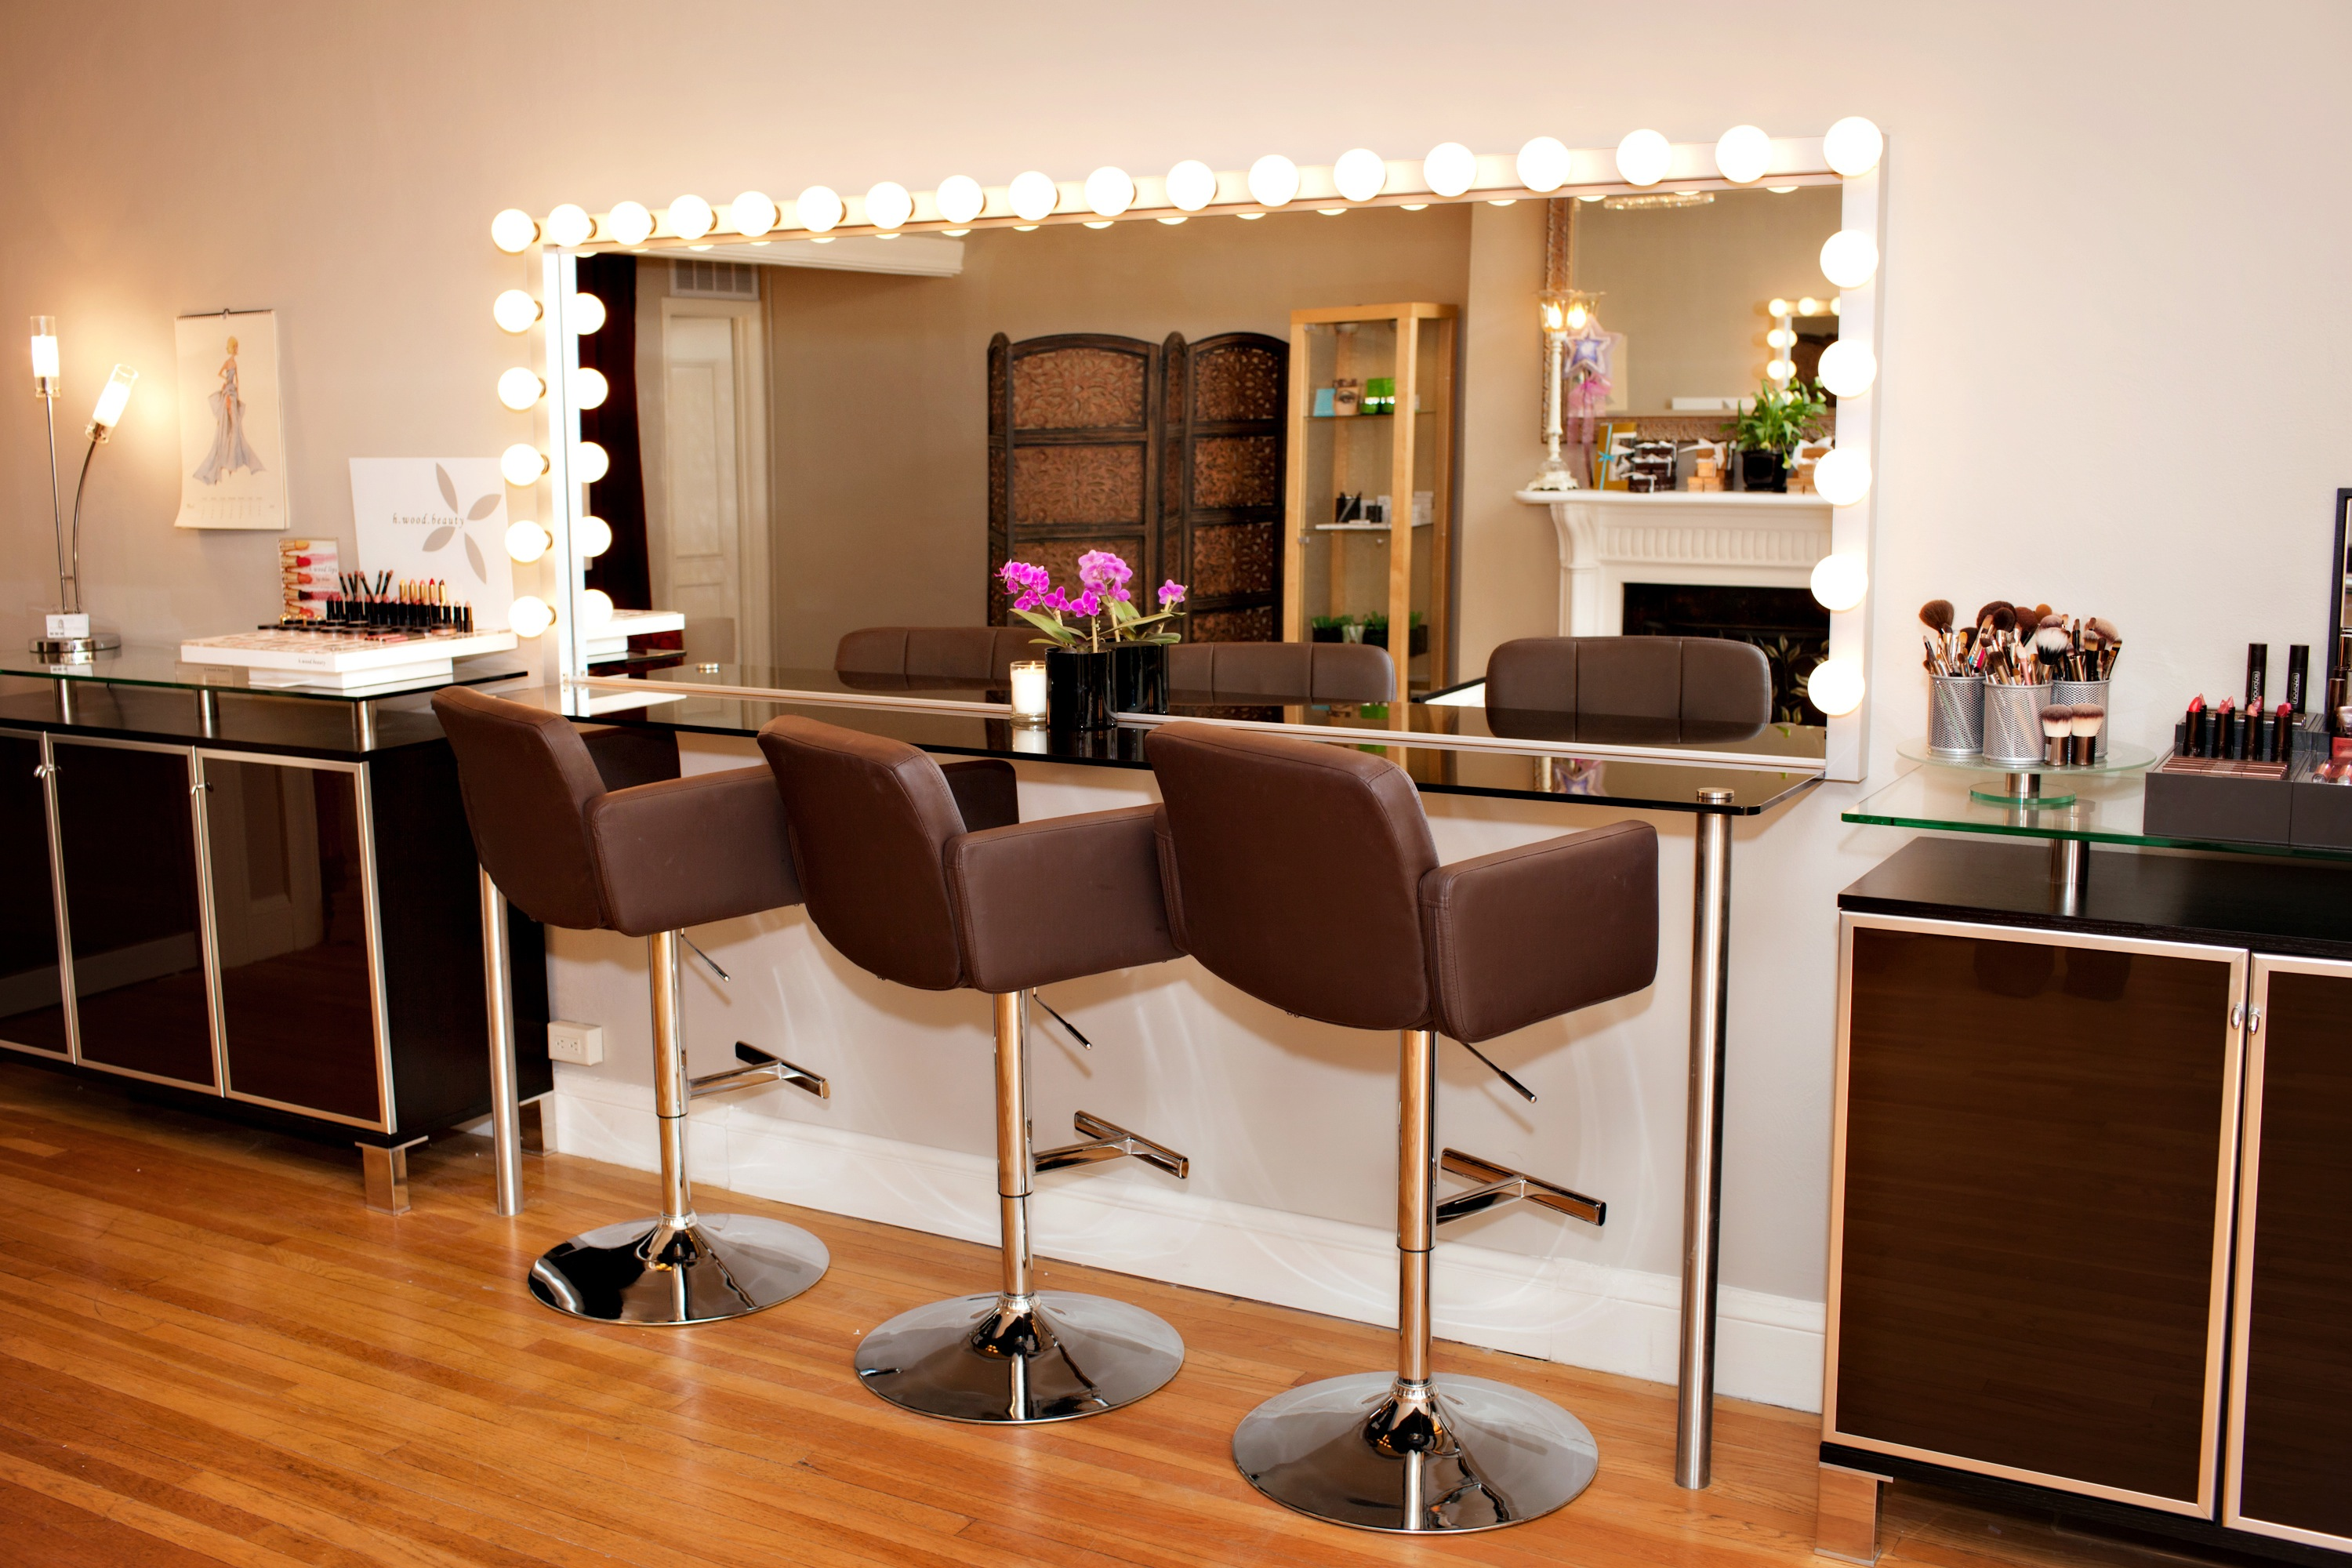 Home Design Studio Furniture Our Makeup Studio In Boston Ma Katrina Hess Makeup Artist